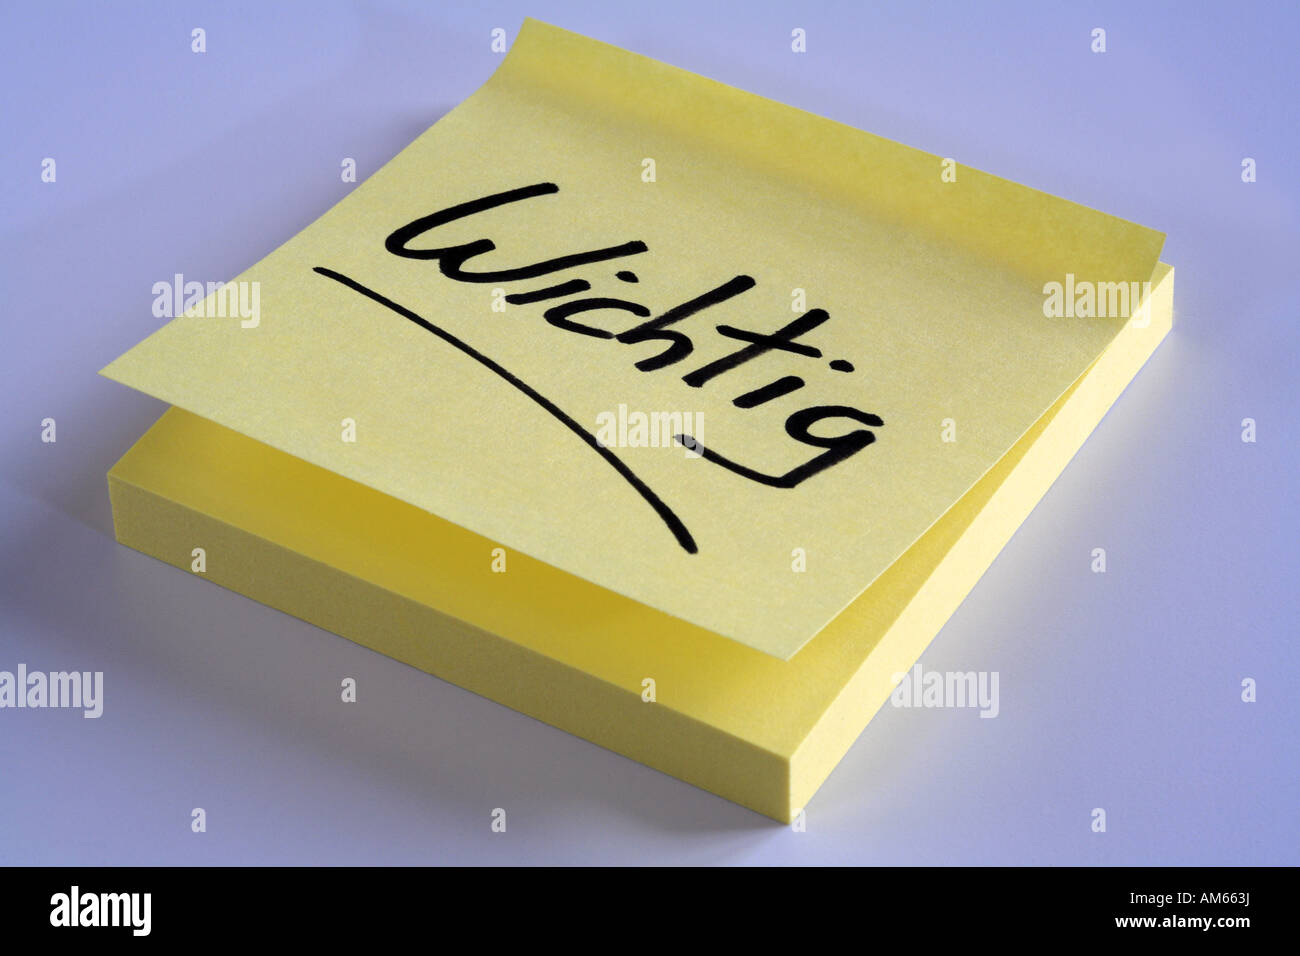 Yellow reminder note 'Wichtig' (important) - Stock Image